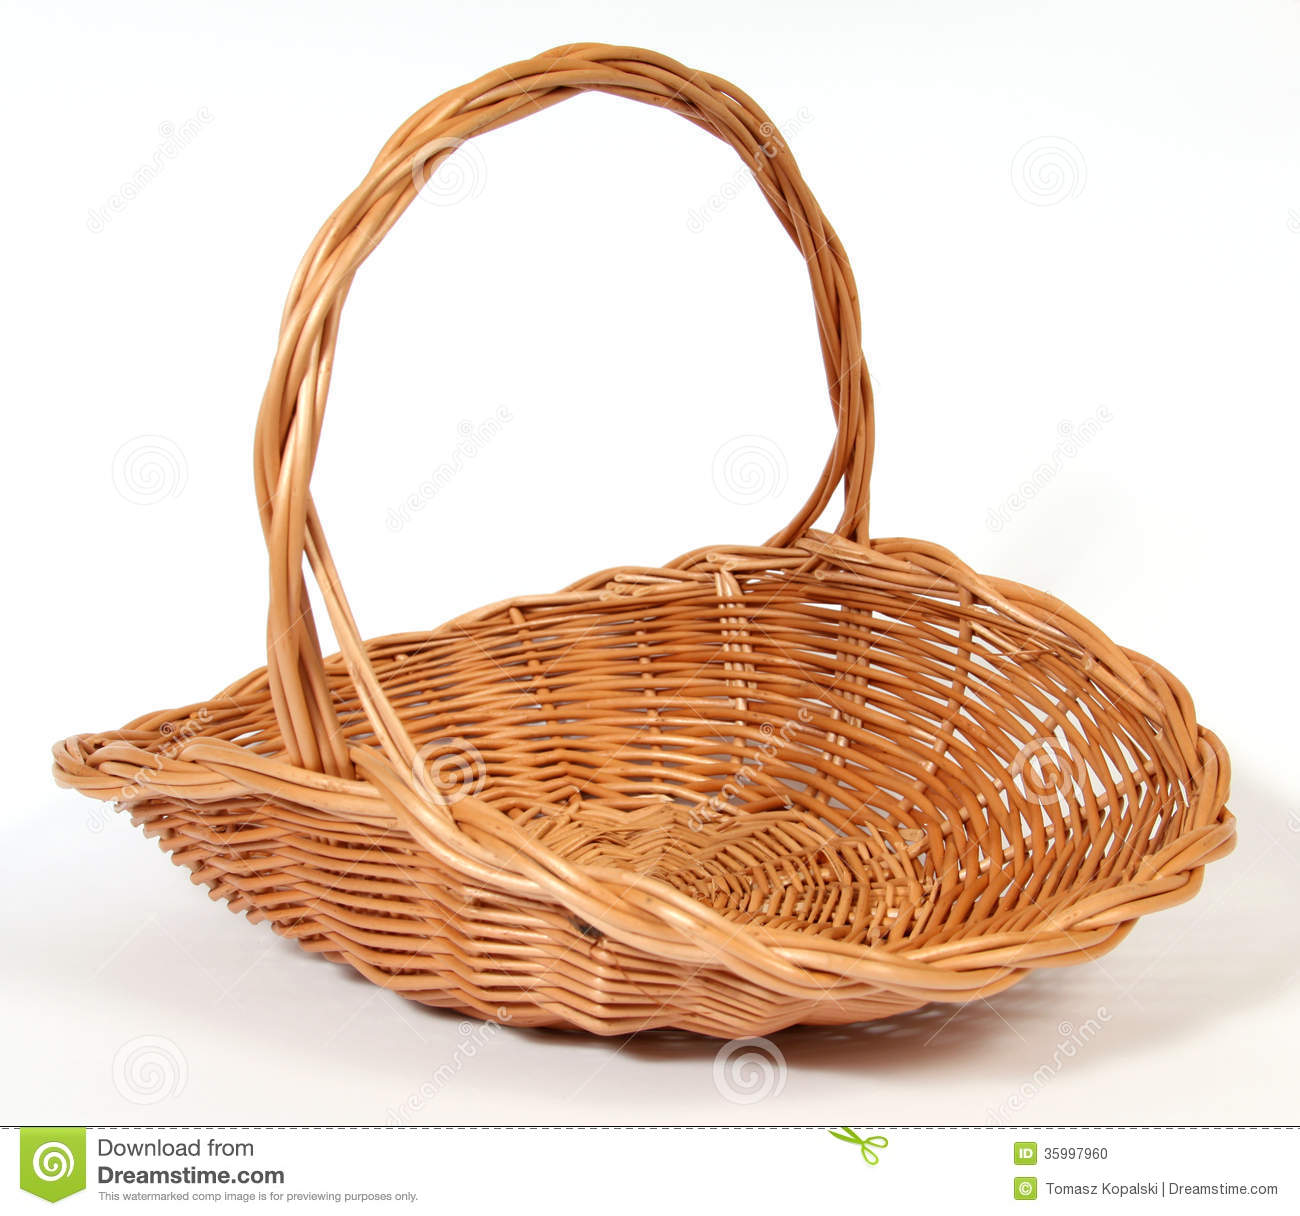 The empty Easter basket from wicker Empty Easter Basket Clipart